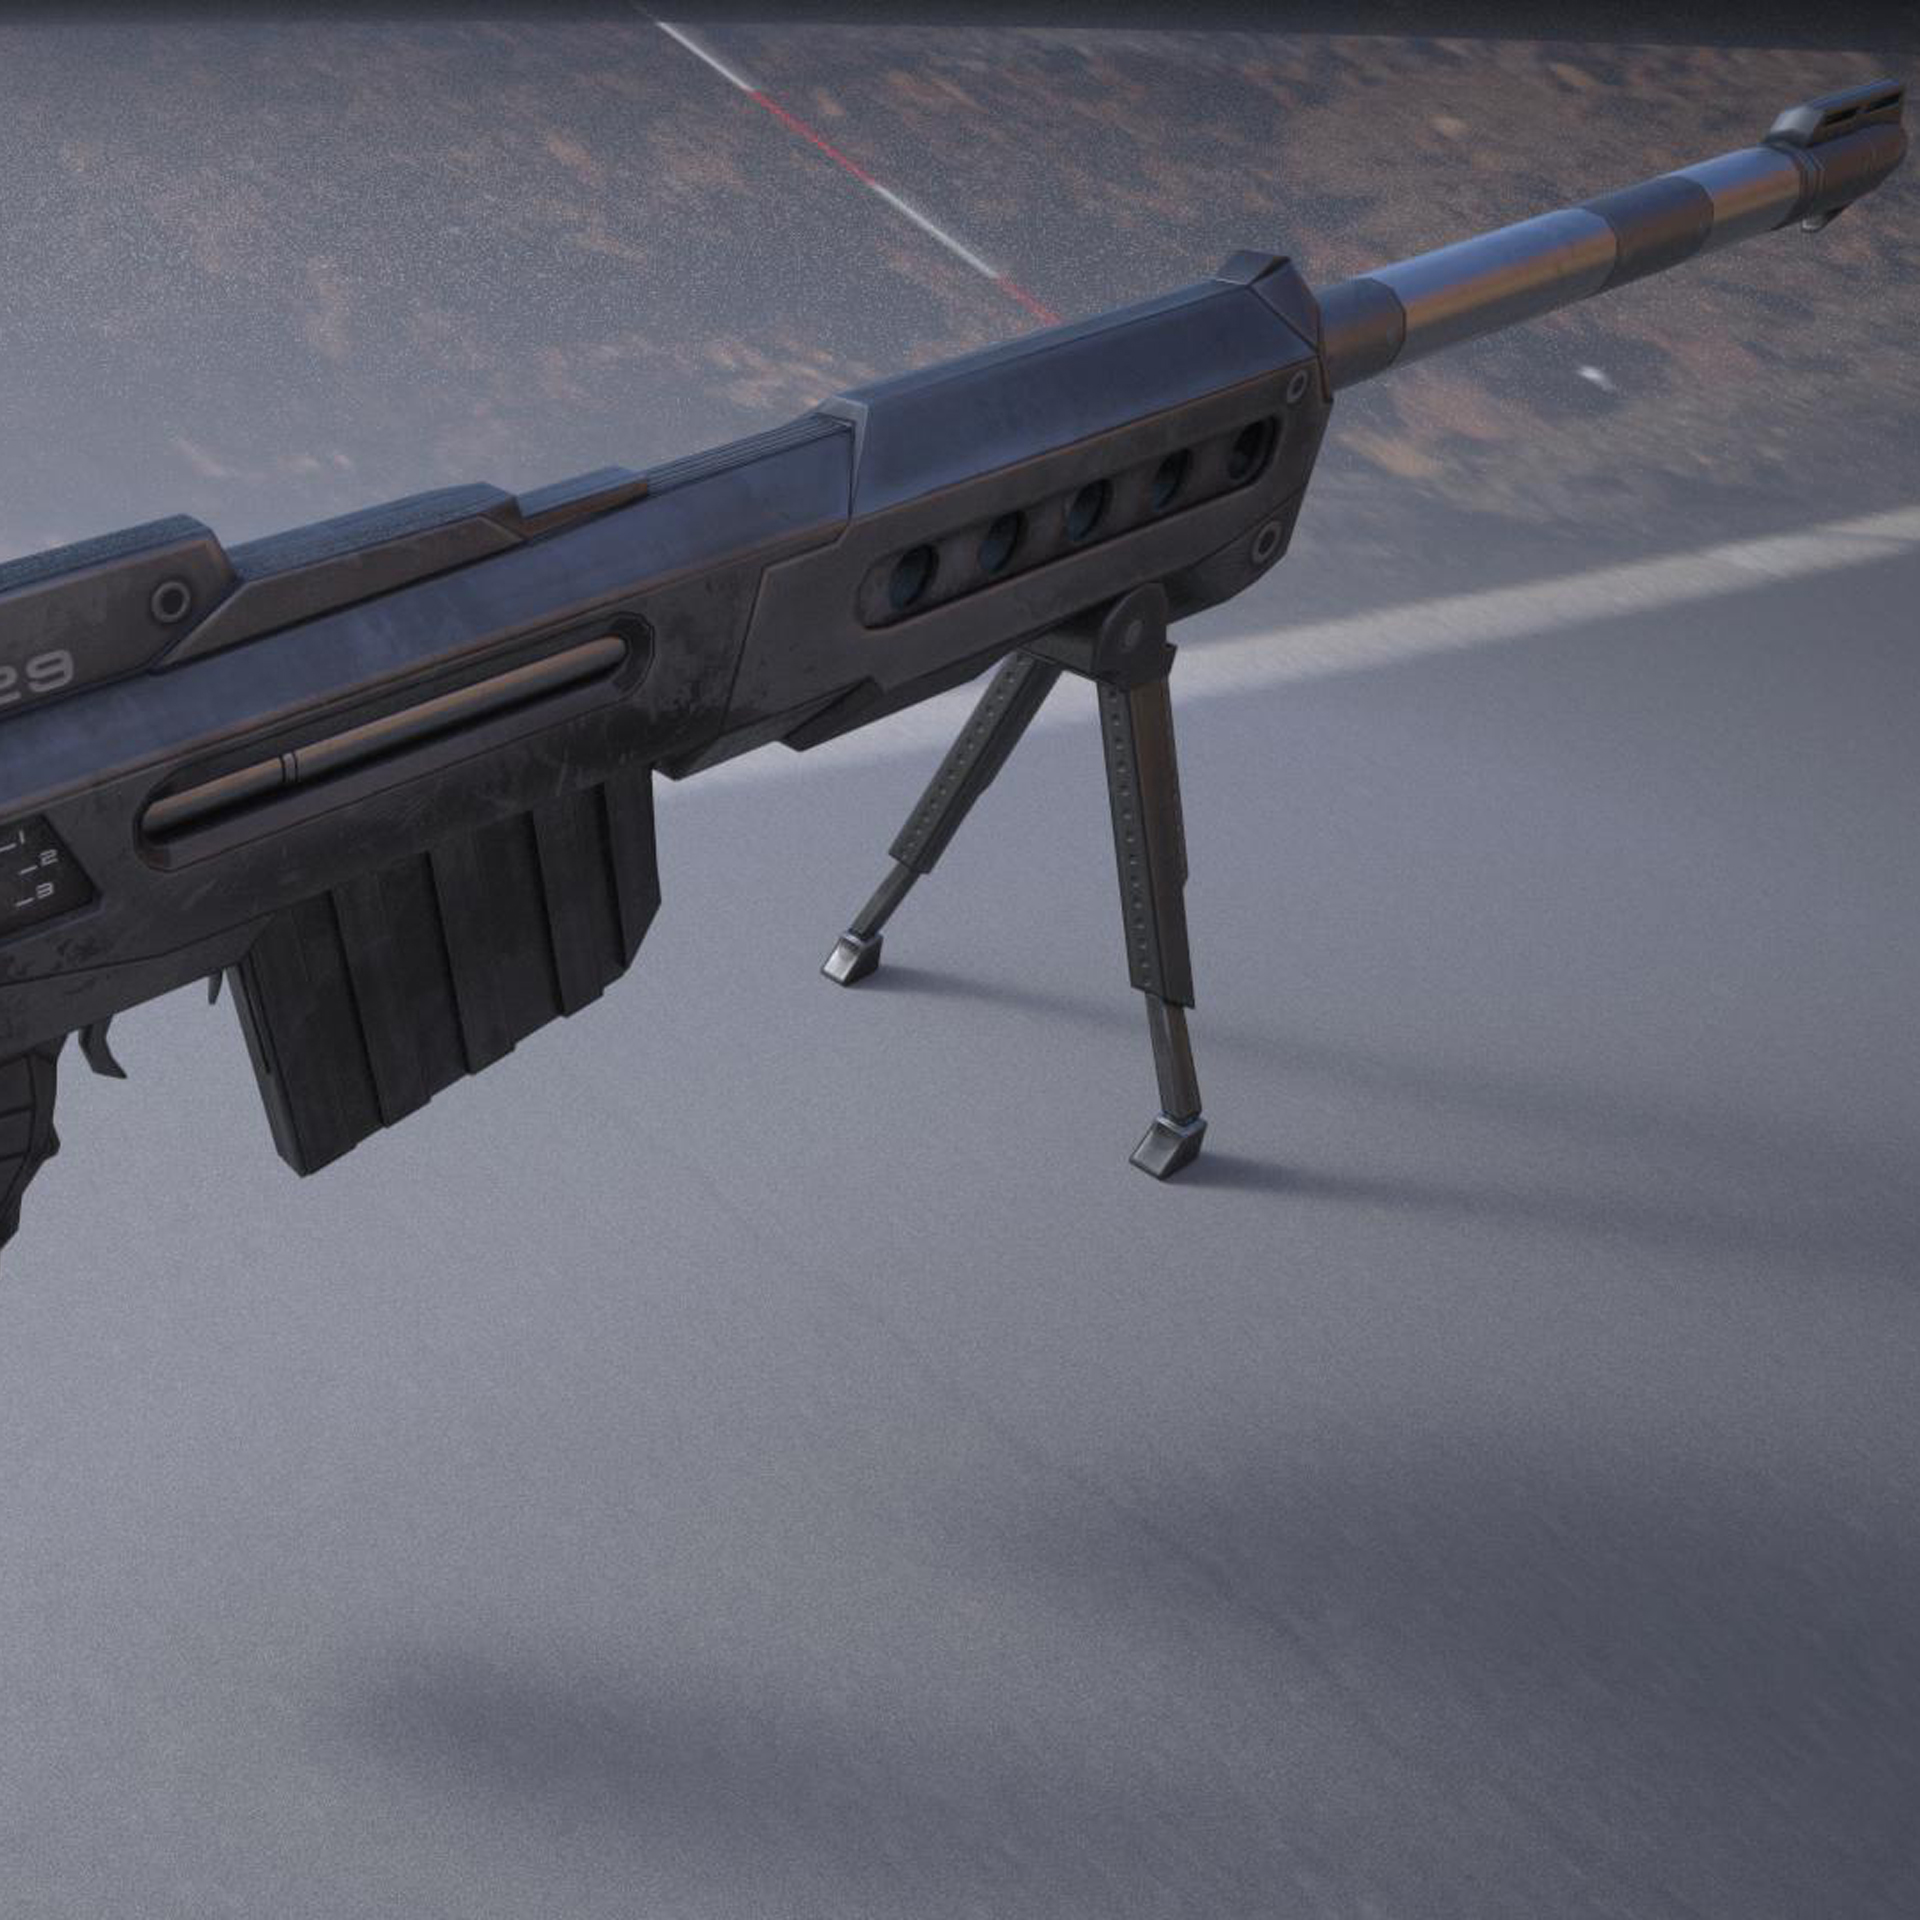 ksr sniper rifle (New)